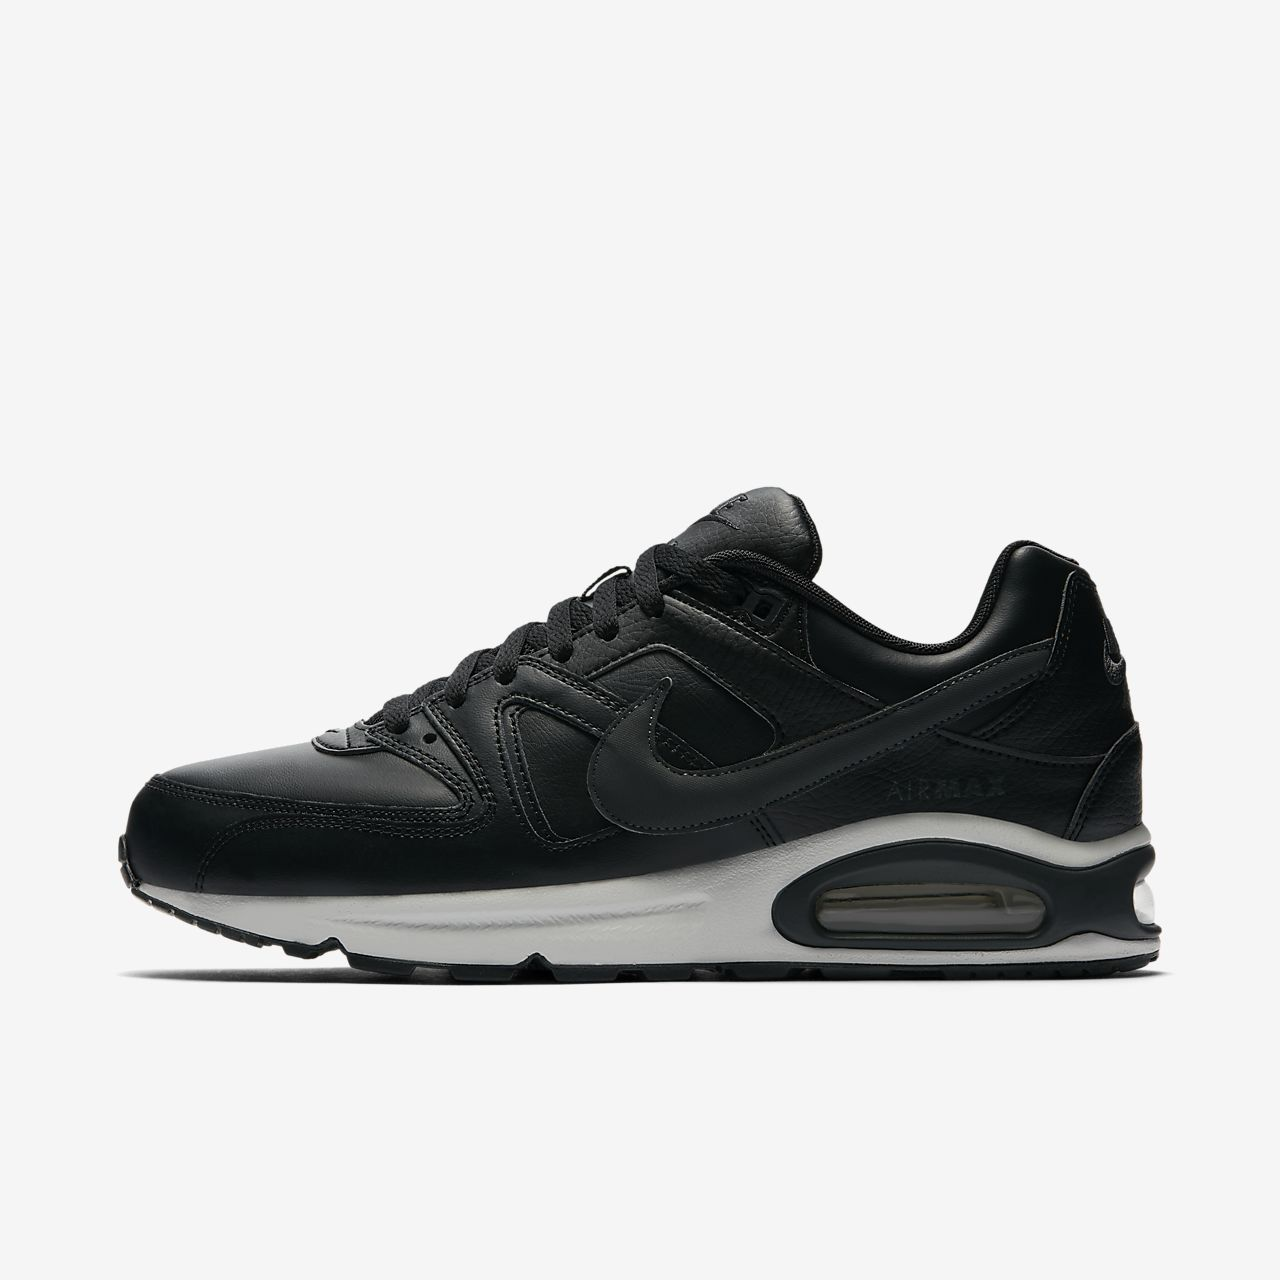 sneakers for cheap b89af ea451 ... Chaussure Nike Air Max Command pour Homme